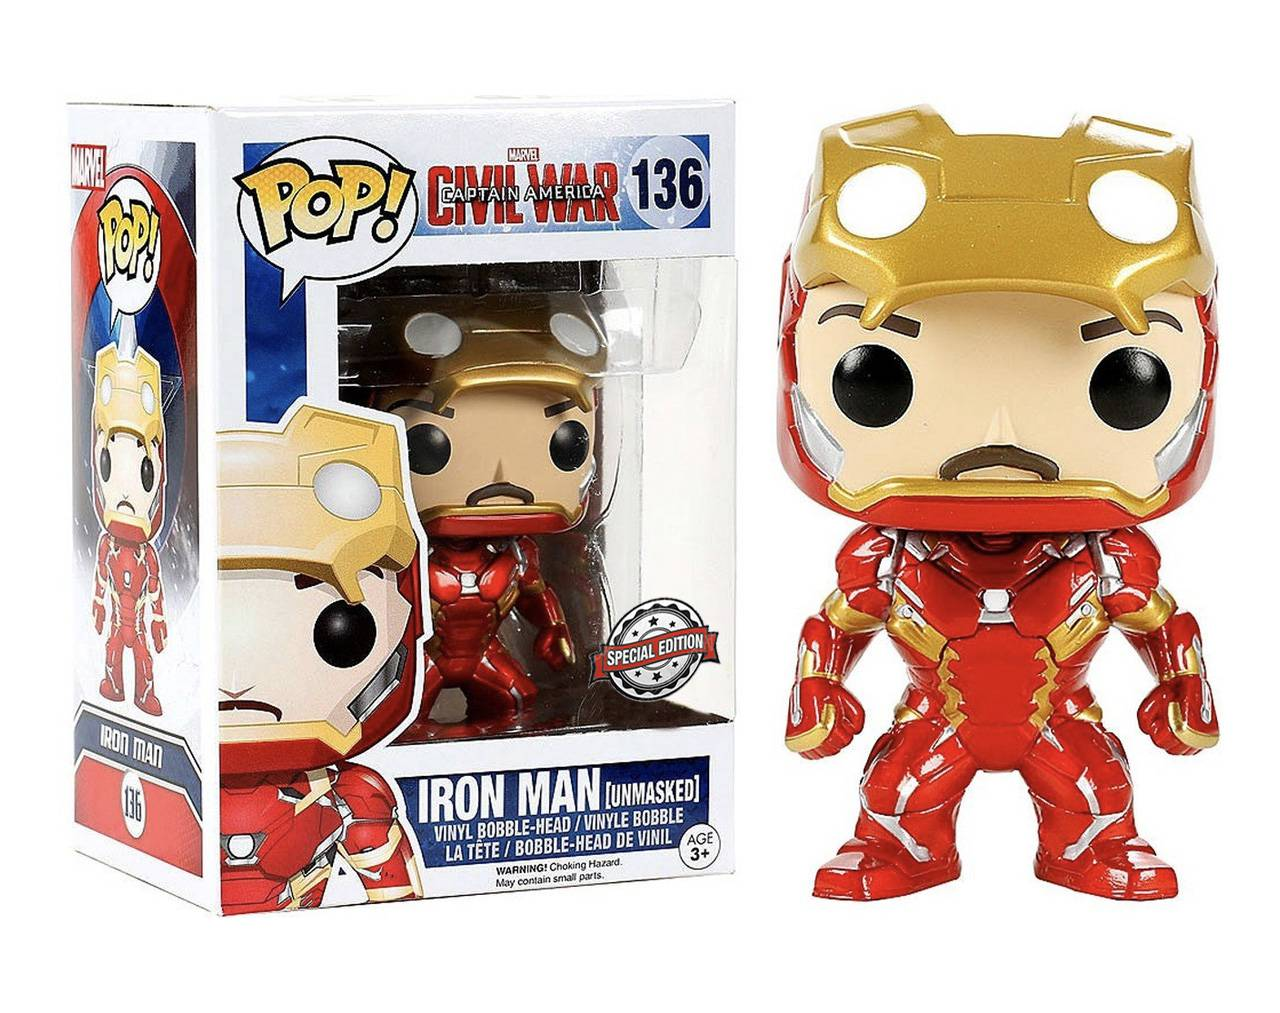 Iron Man (Unmasked) Pop! Vinyl